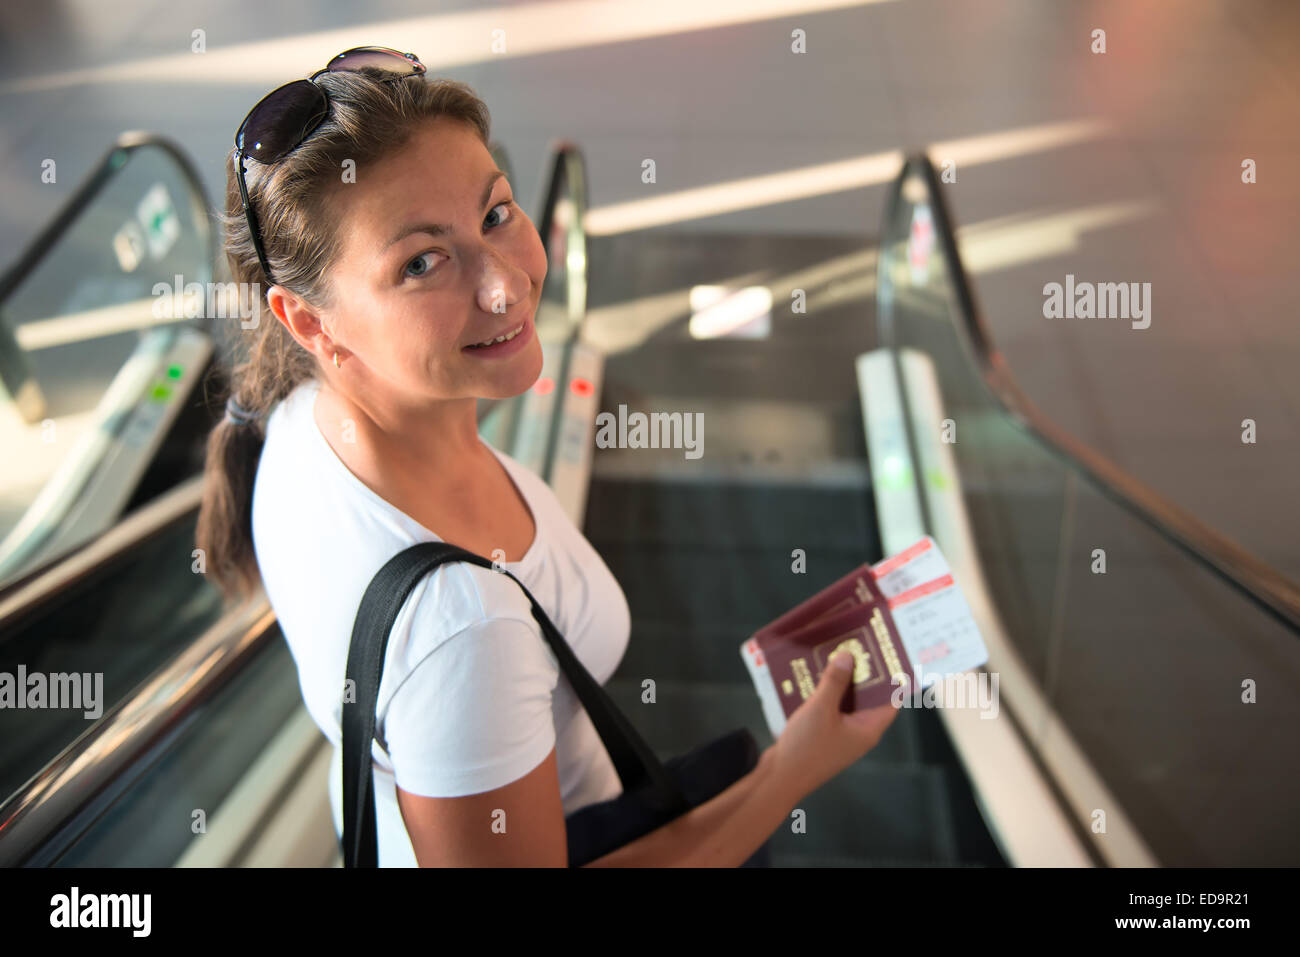 girl with a passport and a ticket is sent to board the aircraft - Stock Image